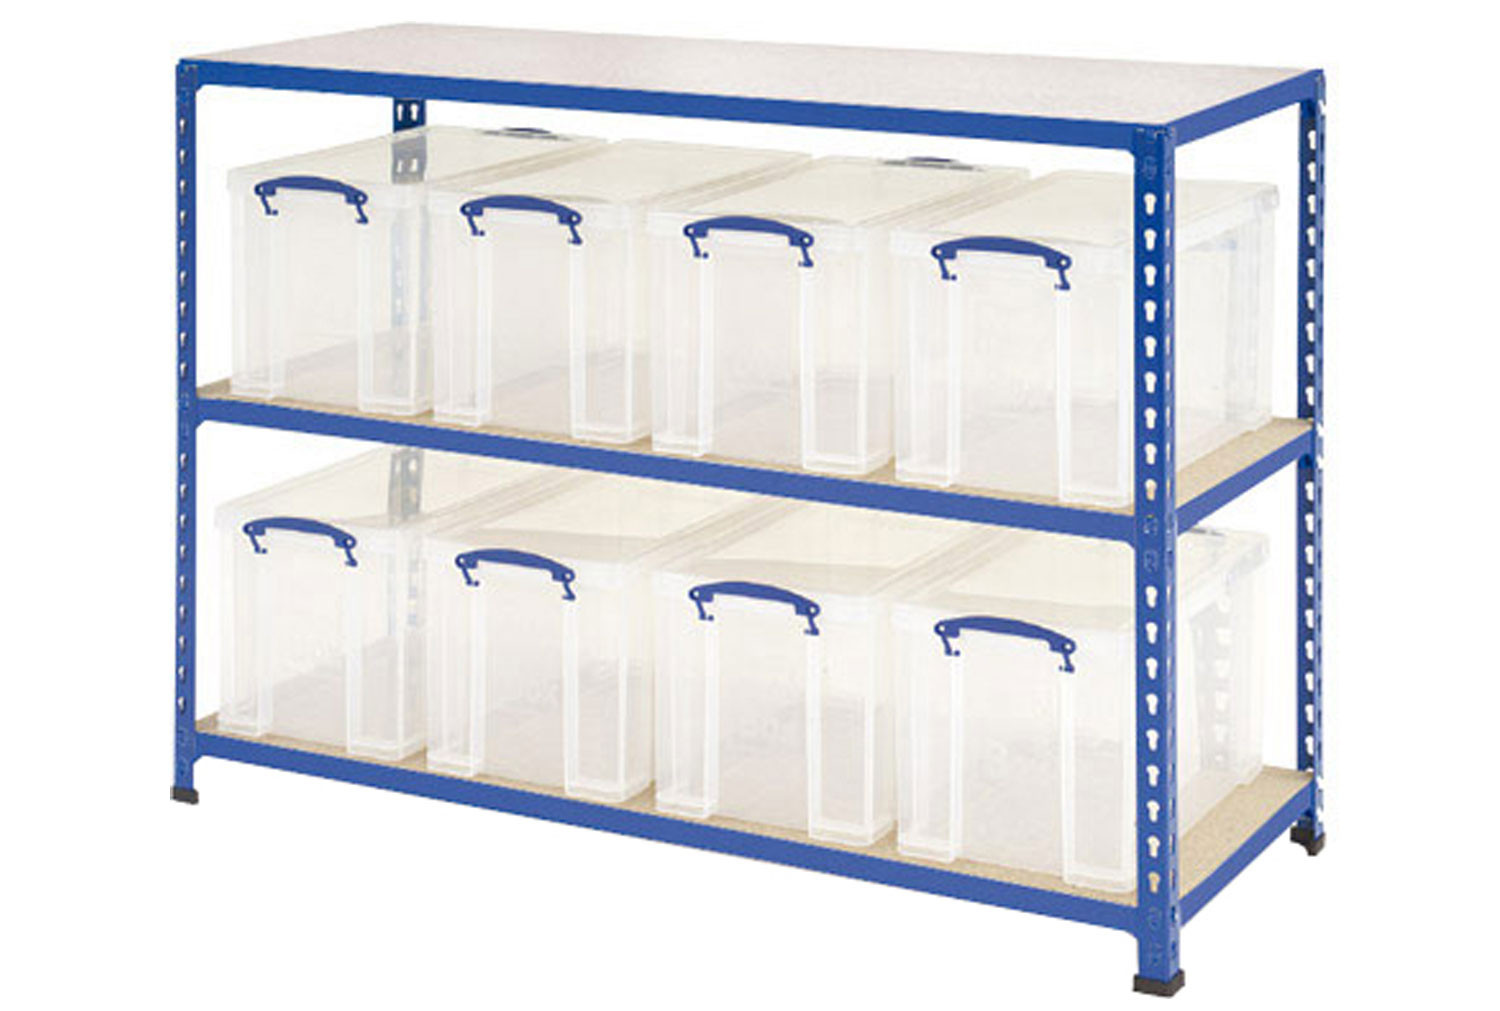 Rapid 2 storage bay with 8 x 24 litre clear really useful boxes